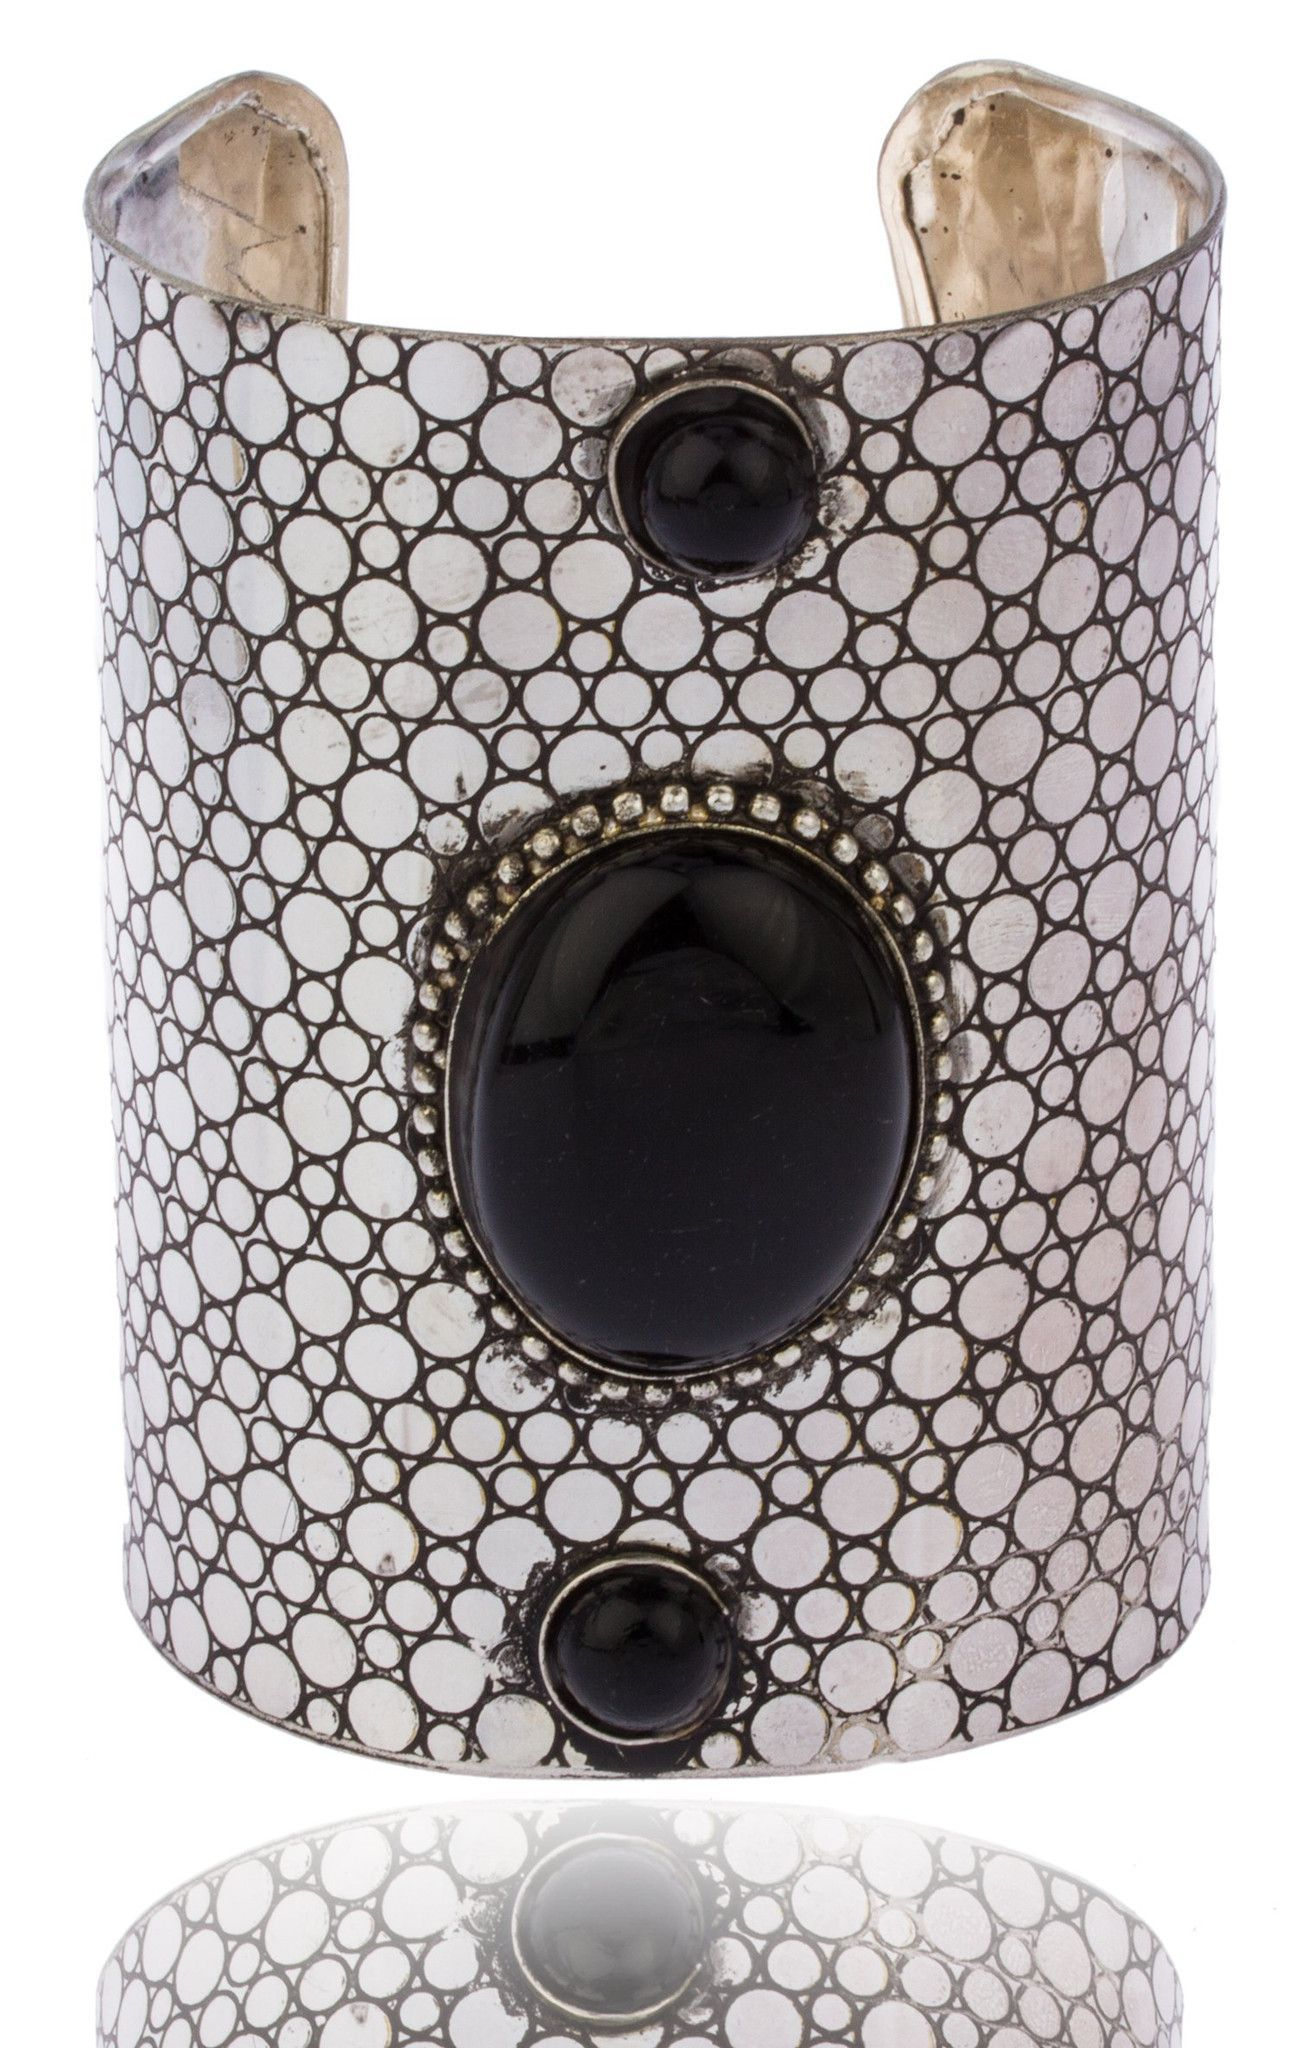 Silvertone with Black Antique Hammered Design 4 Inch Adjustable Cuff Bangle